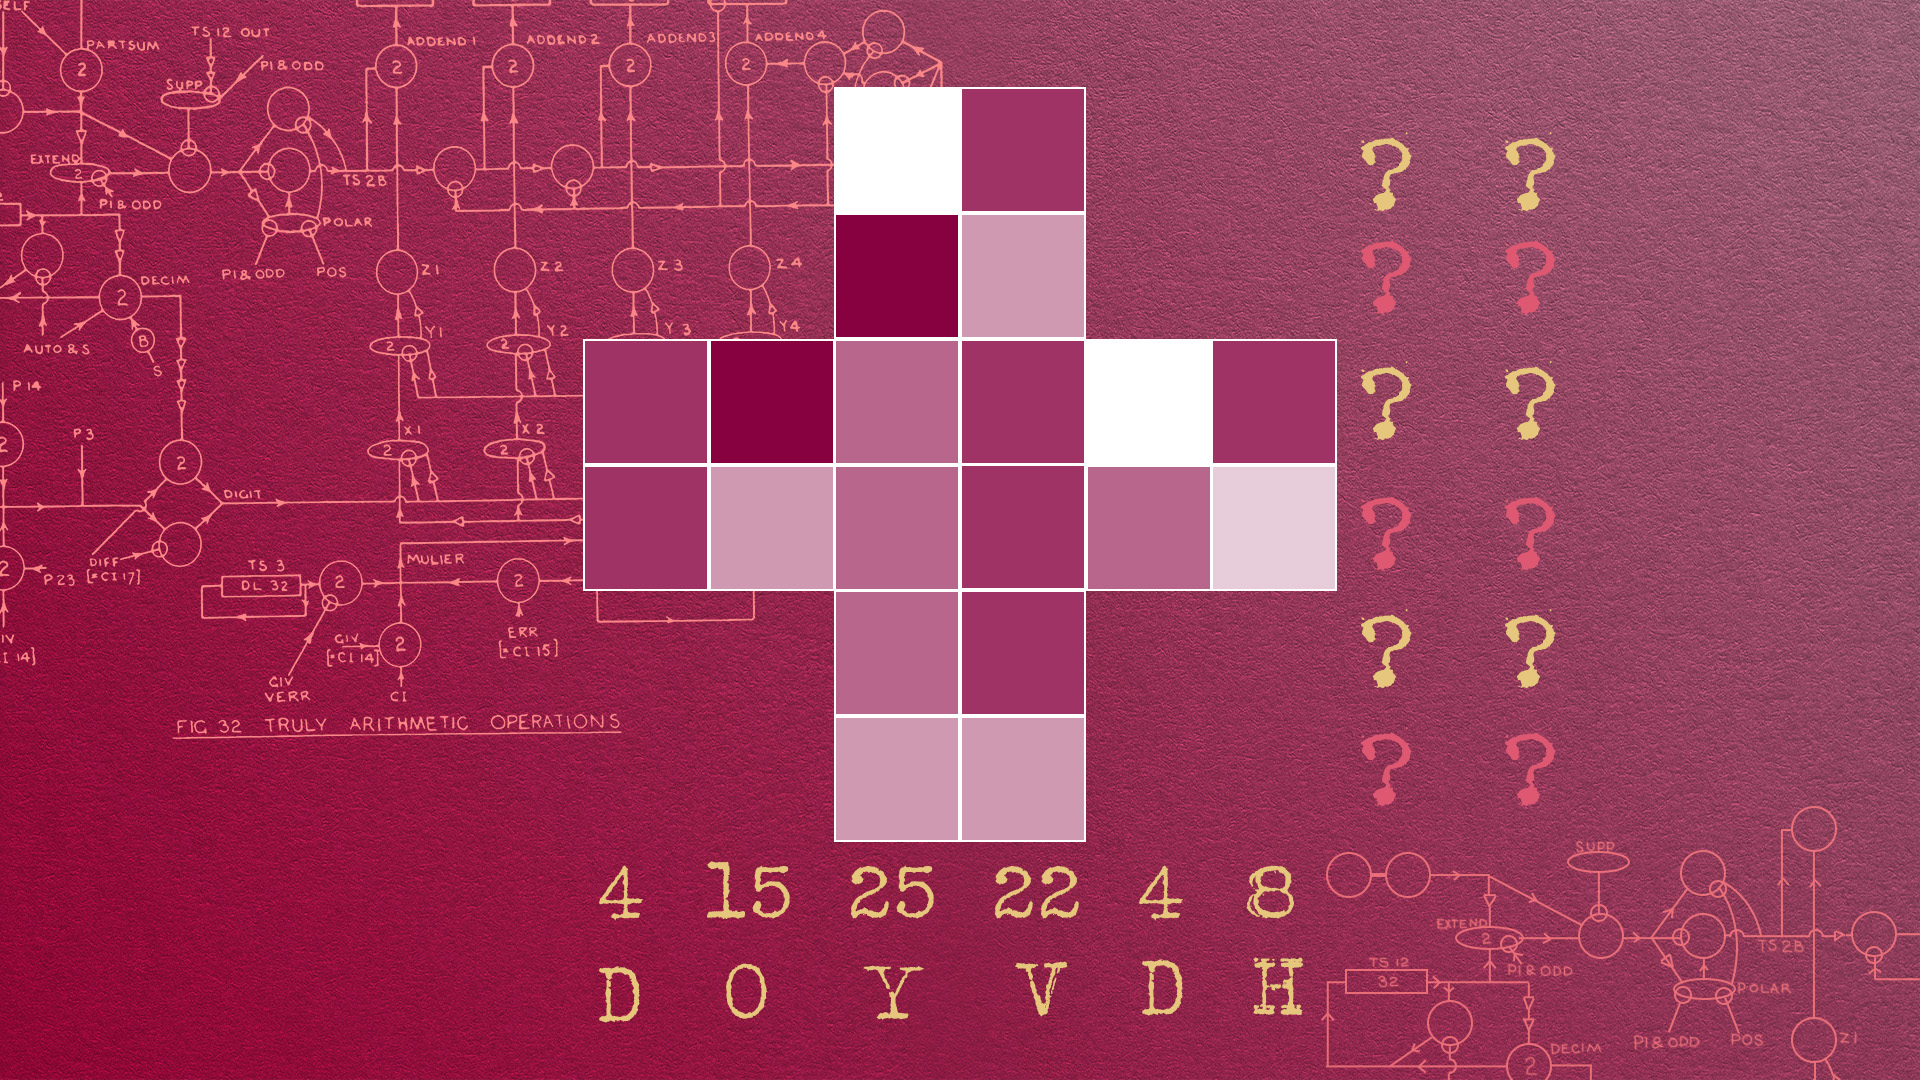 on a righ red background is one of Turing's diagrams. Overlaid is a cross made up of 24 small boxes, in 6 shades of pink. Along the right had edge there are two question marks at the end of each line of boxes in the cross. Along the bottom of the cross are two rows, one of numbers reading 4 15 25 22 4 8 and directly underneath are letters reading D O Y V D H